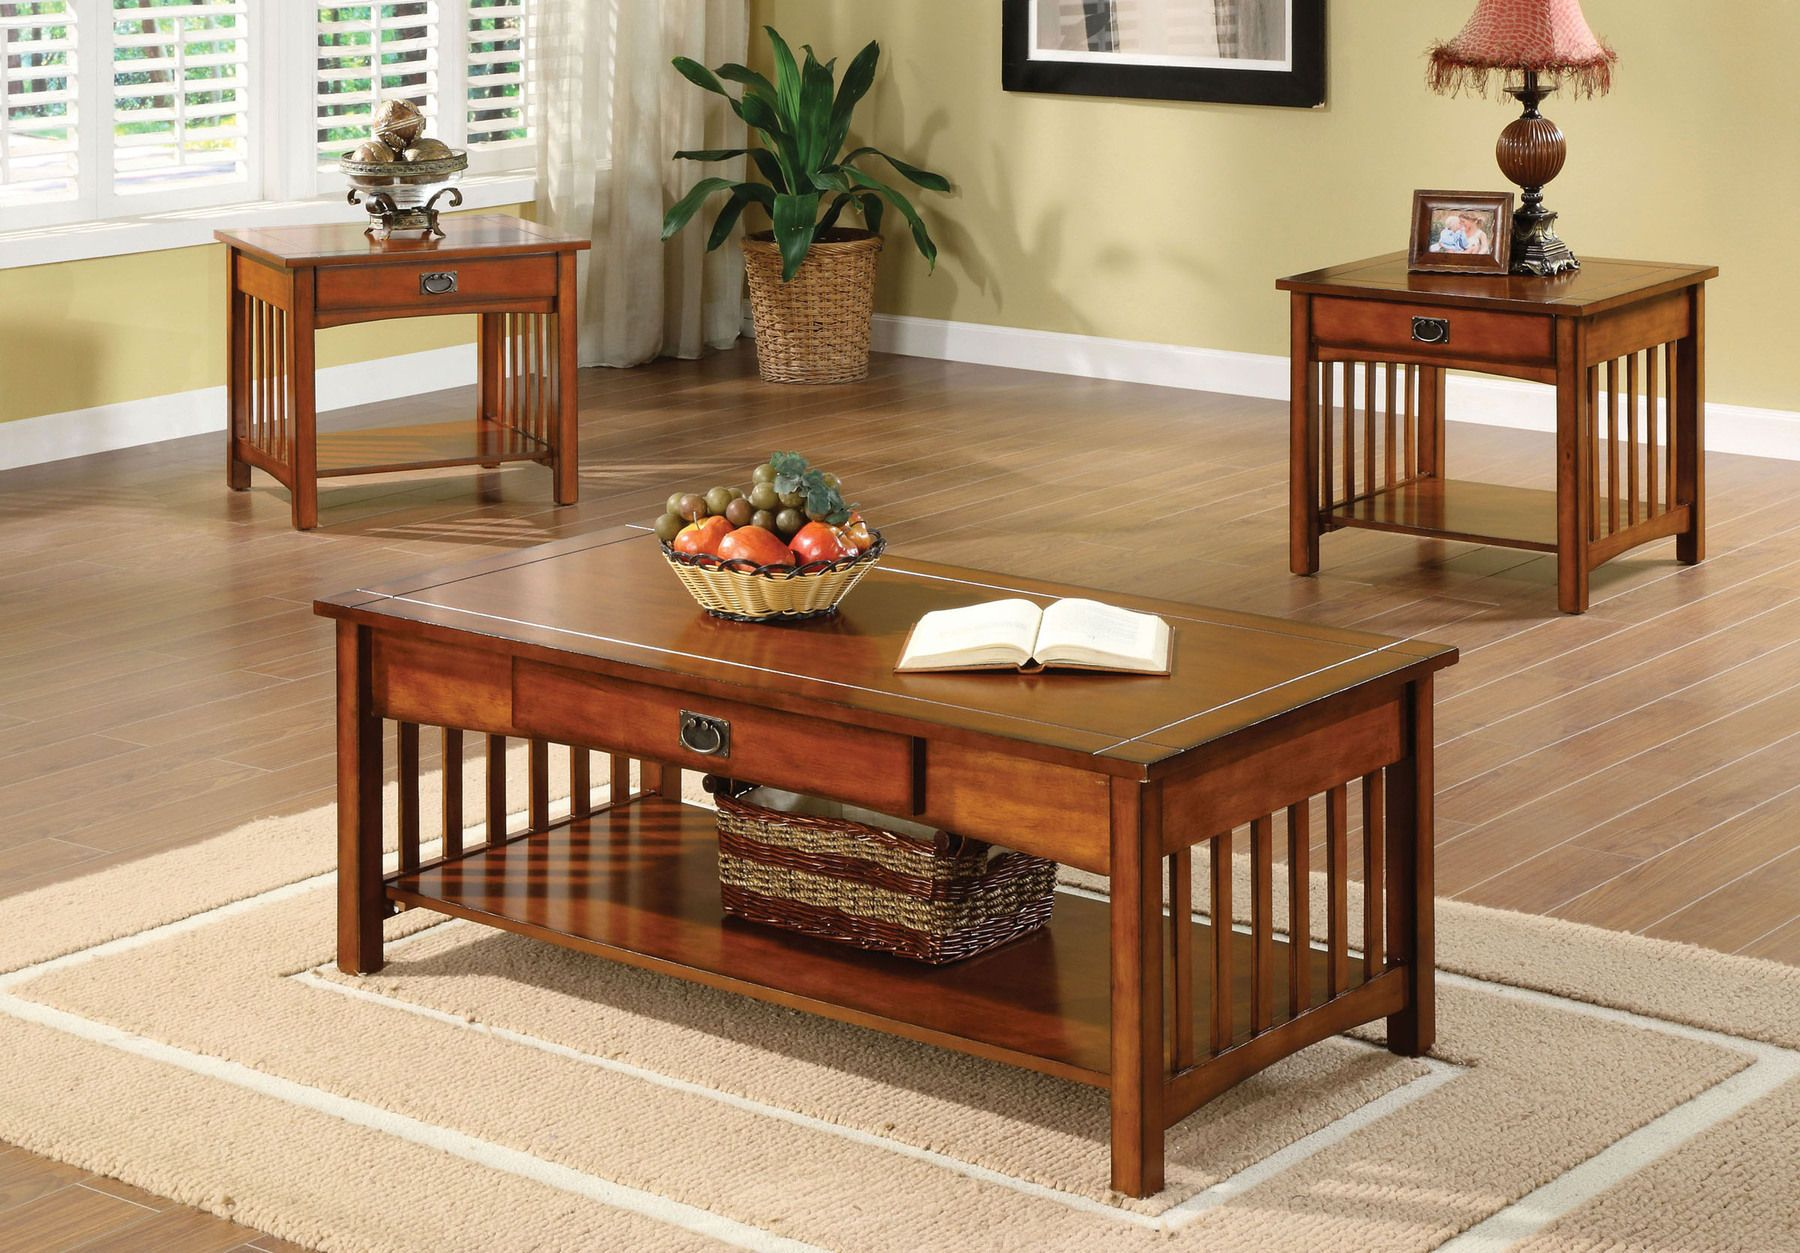 Seville Coffee Table 2 End Tables Cm4245 3pk Furniture Of America Coffee Tables In 2021 Living Room Table Sets Mission Style Living Room Mission Style Furniture [ 1253 x 1800 Pixel ]